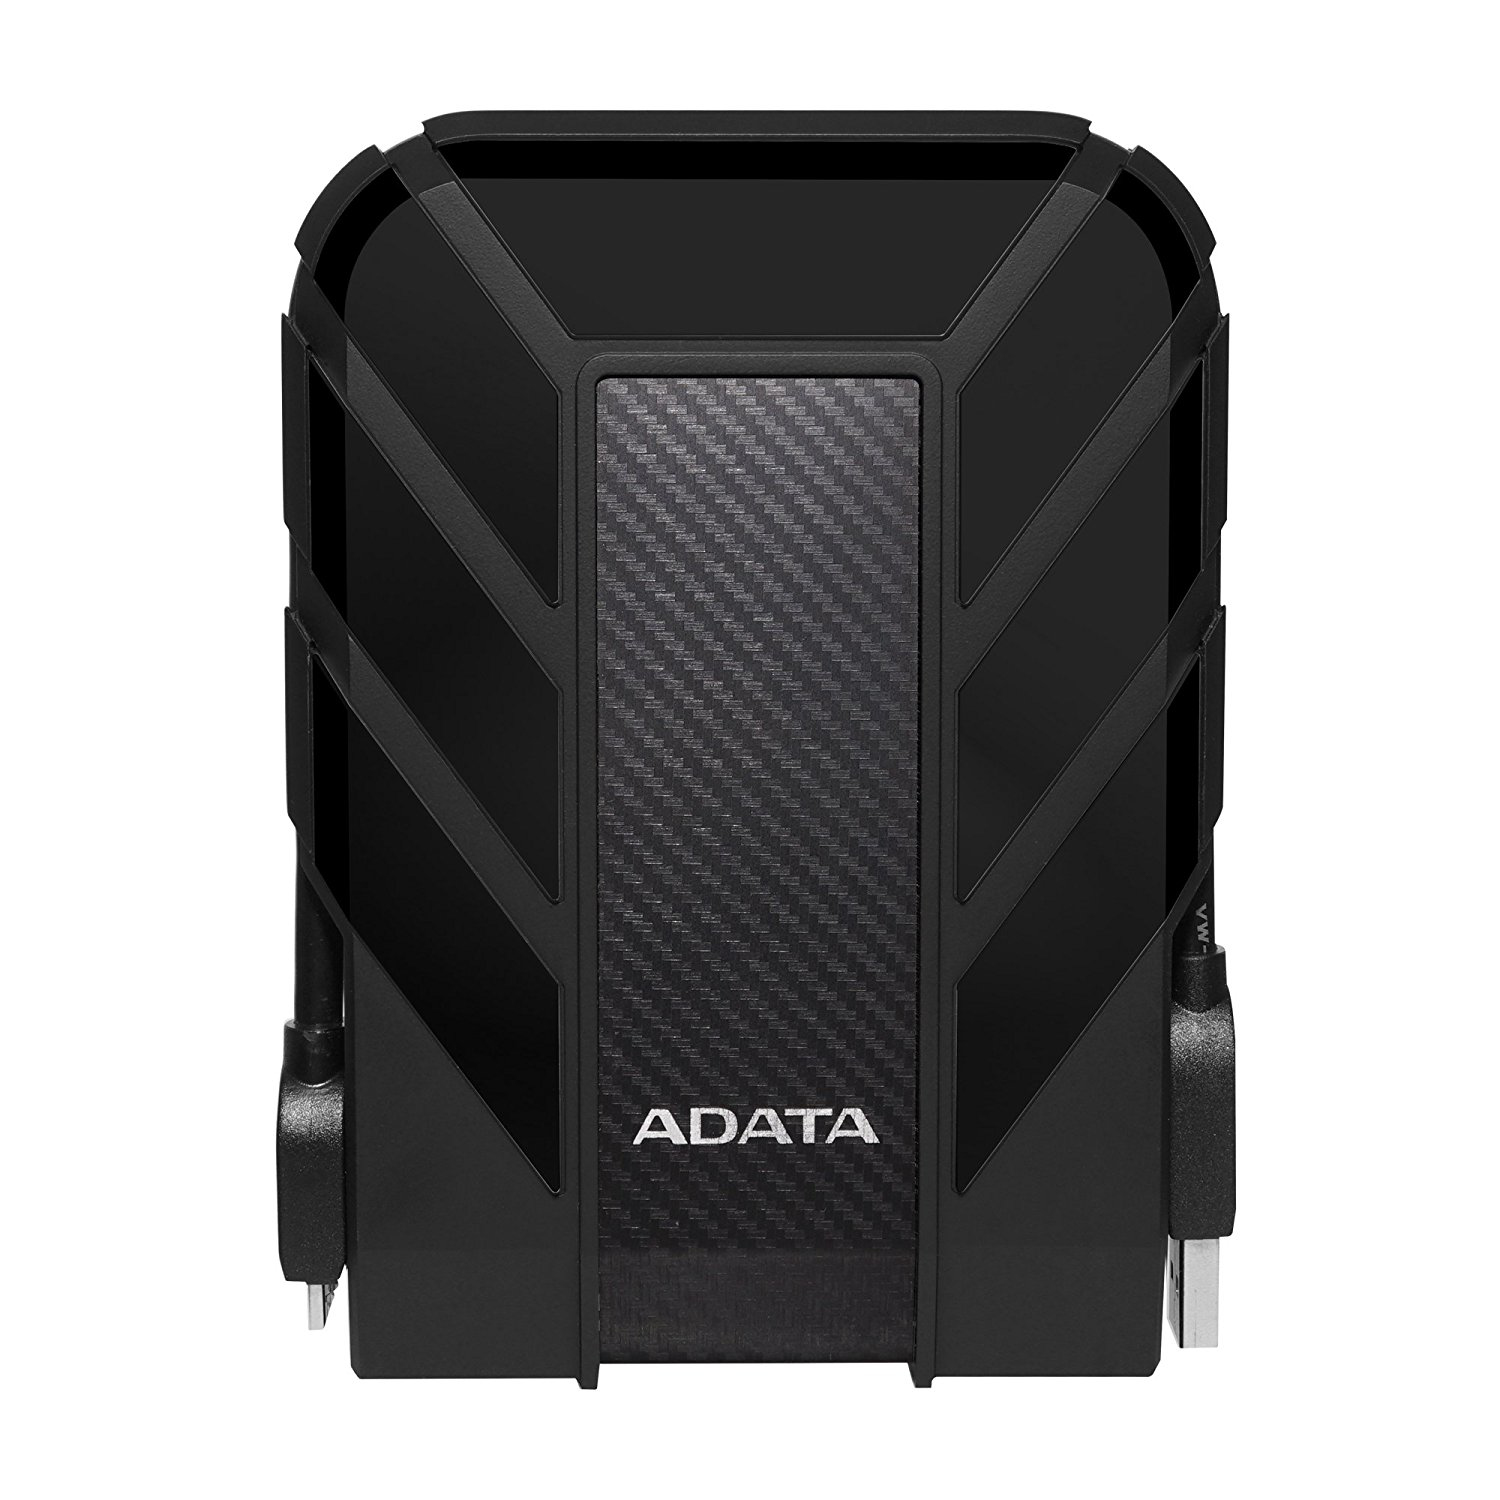 ADATA HD710 PRO 2000GB BLACK EXTERNAL HARD DRIVE